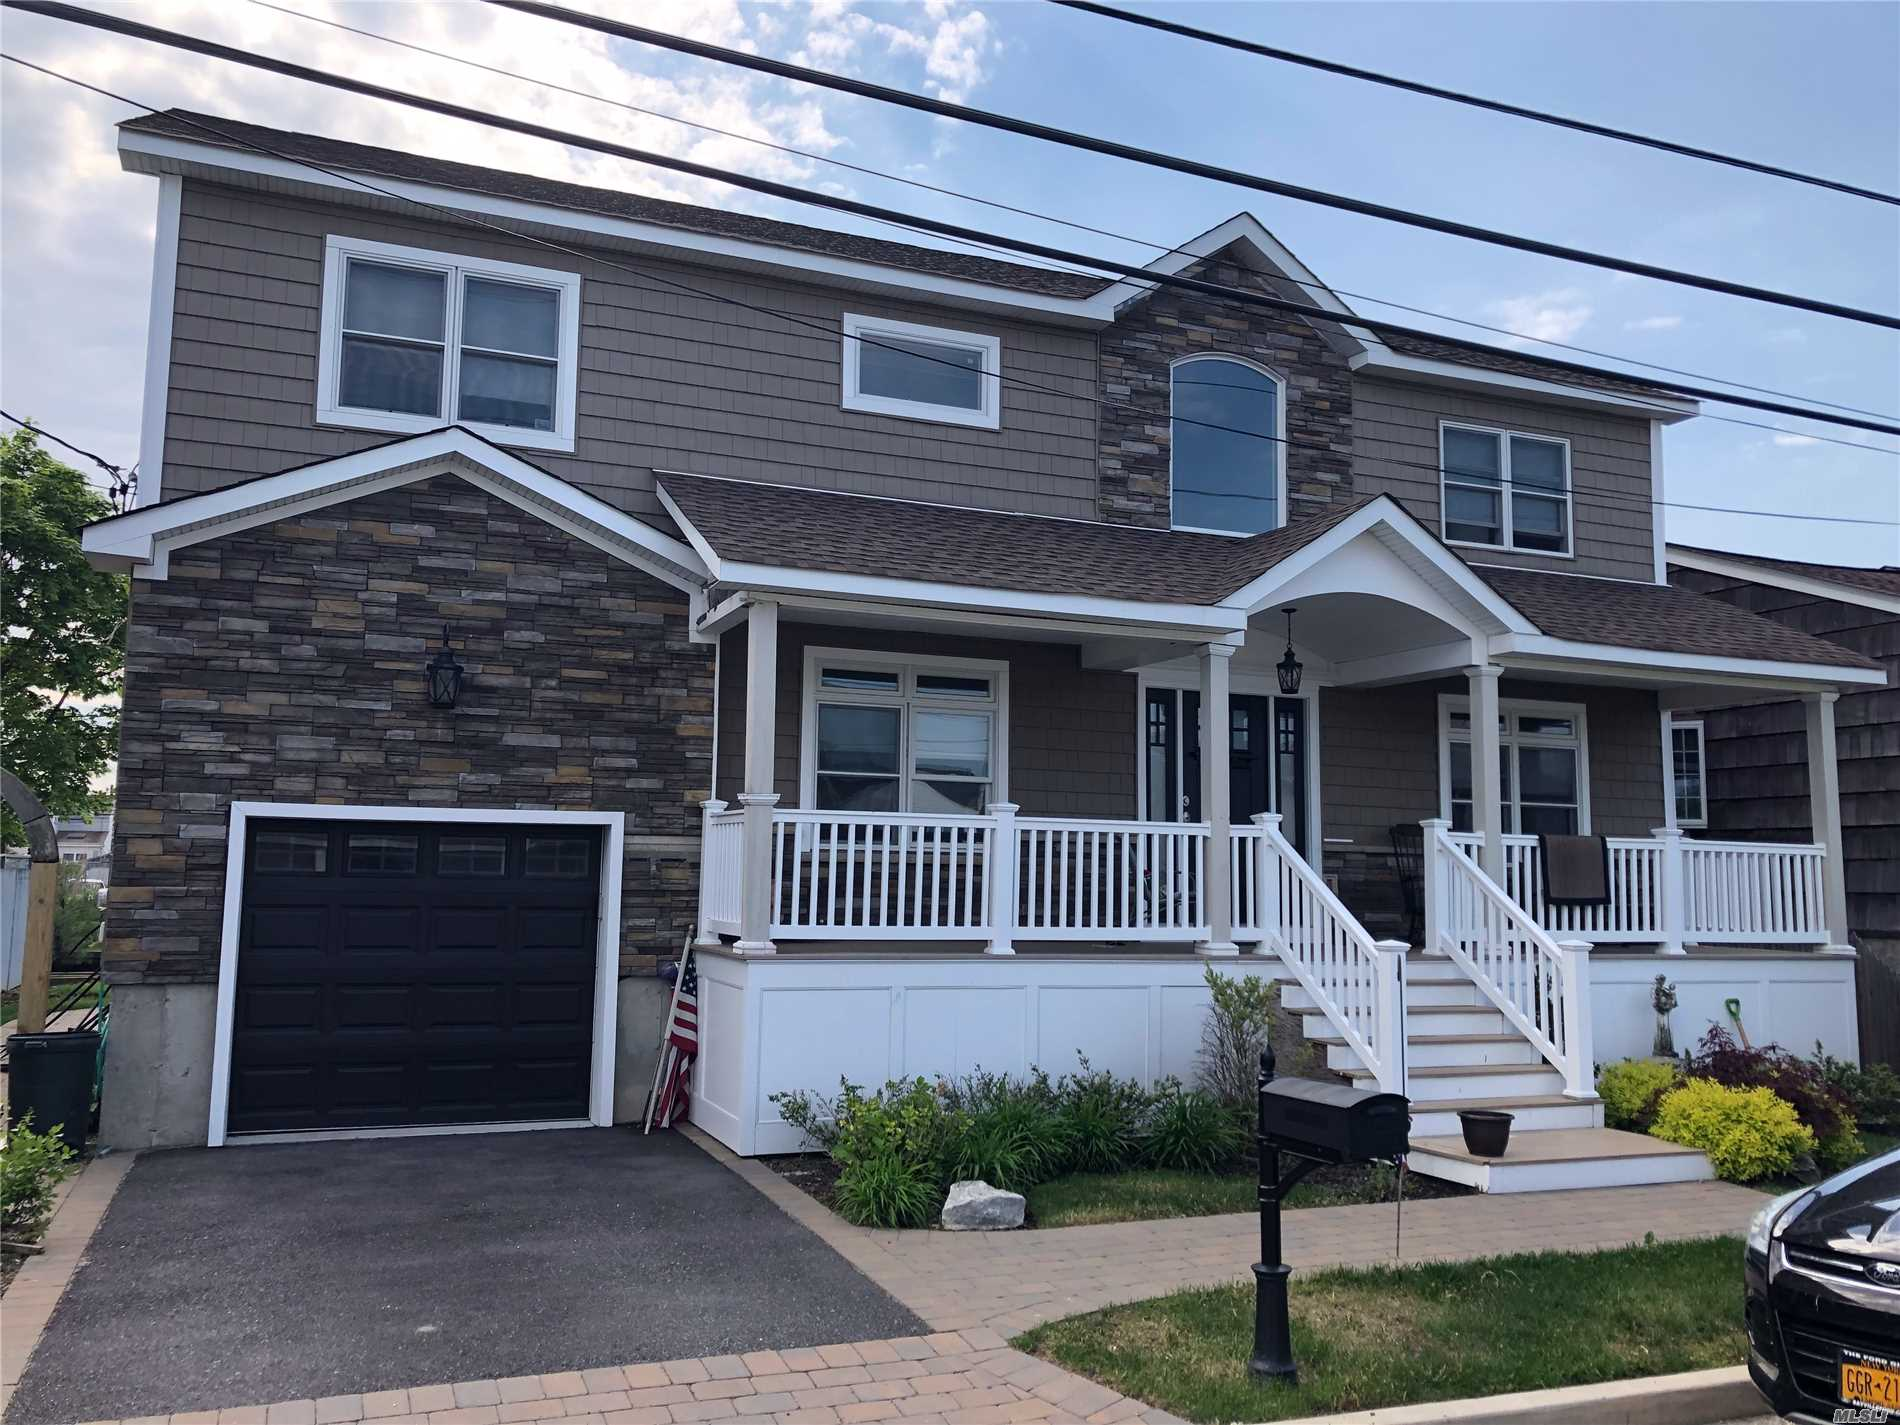 Residenziale in 2584 Peconic Ave, Seaford, NY ,11783